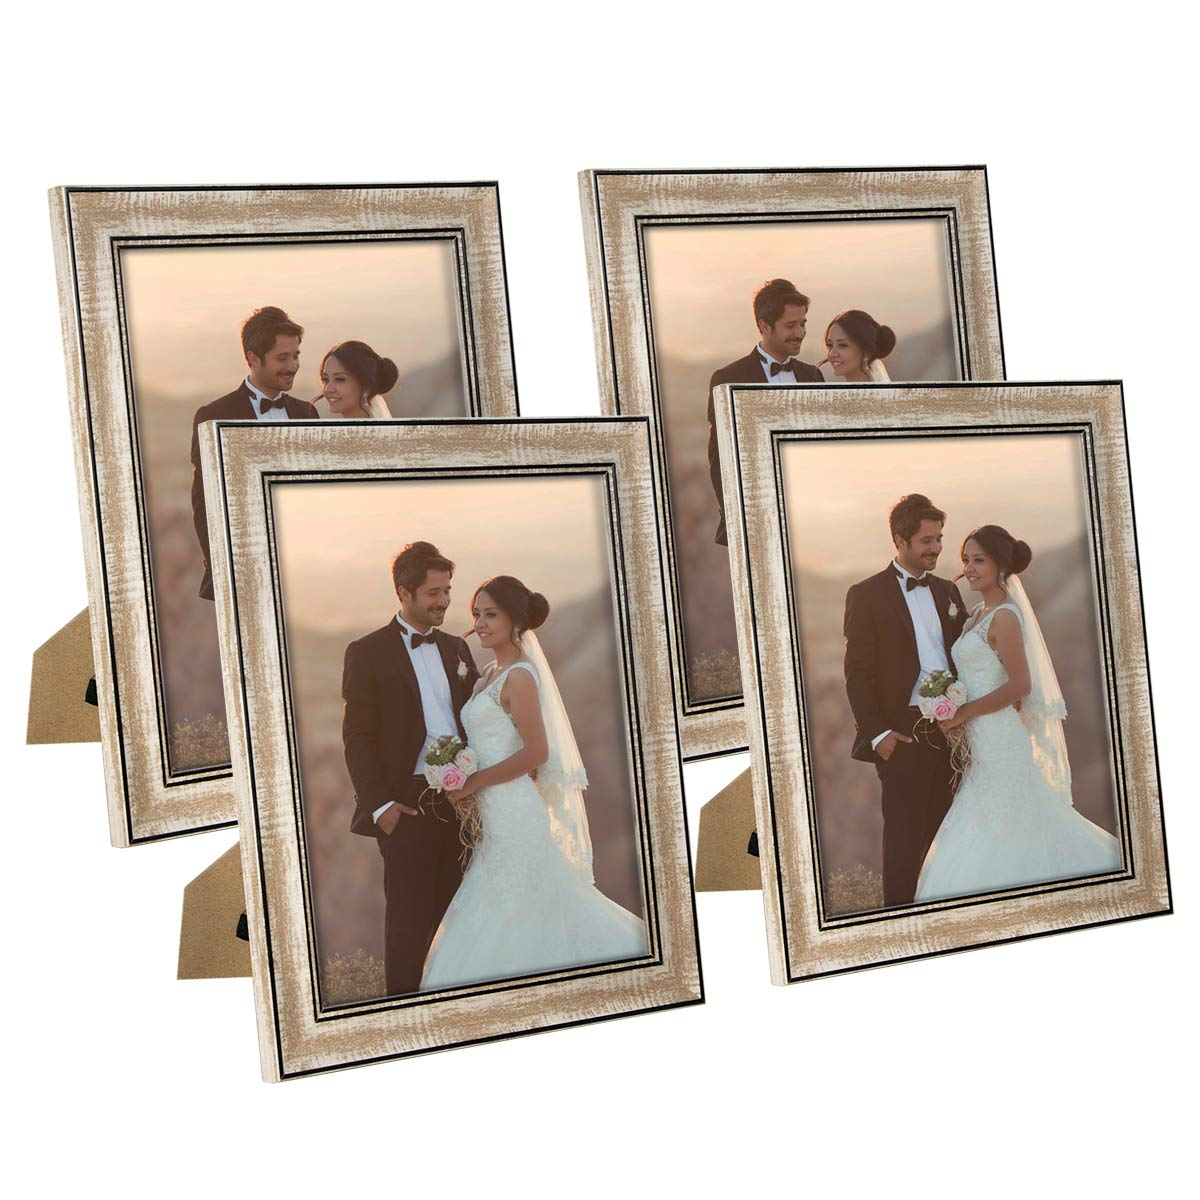 NUOLAN 8x10 Picture Frame Farmhouse Rustic Brown Wood Pattern Photo Frames with Silica Glass for Tabletop or Wall Mounting,4 Pack (NL-WPC8X10-RB) by NUOLAN